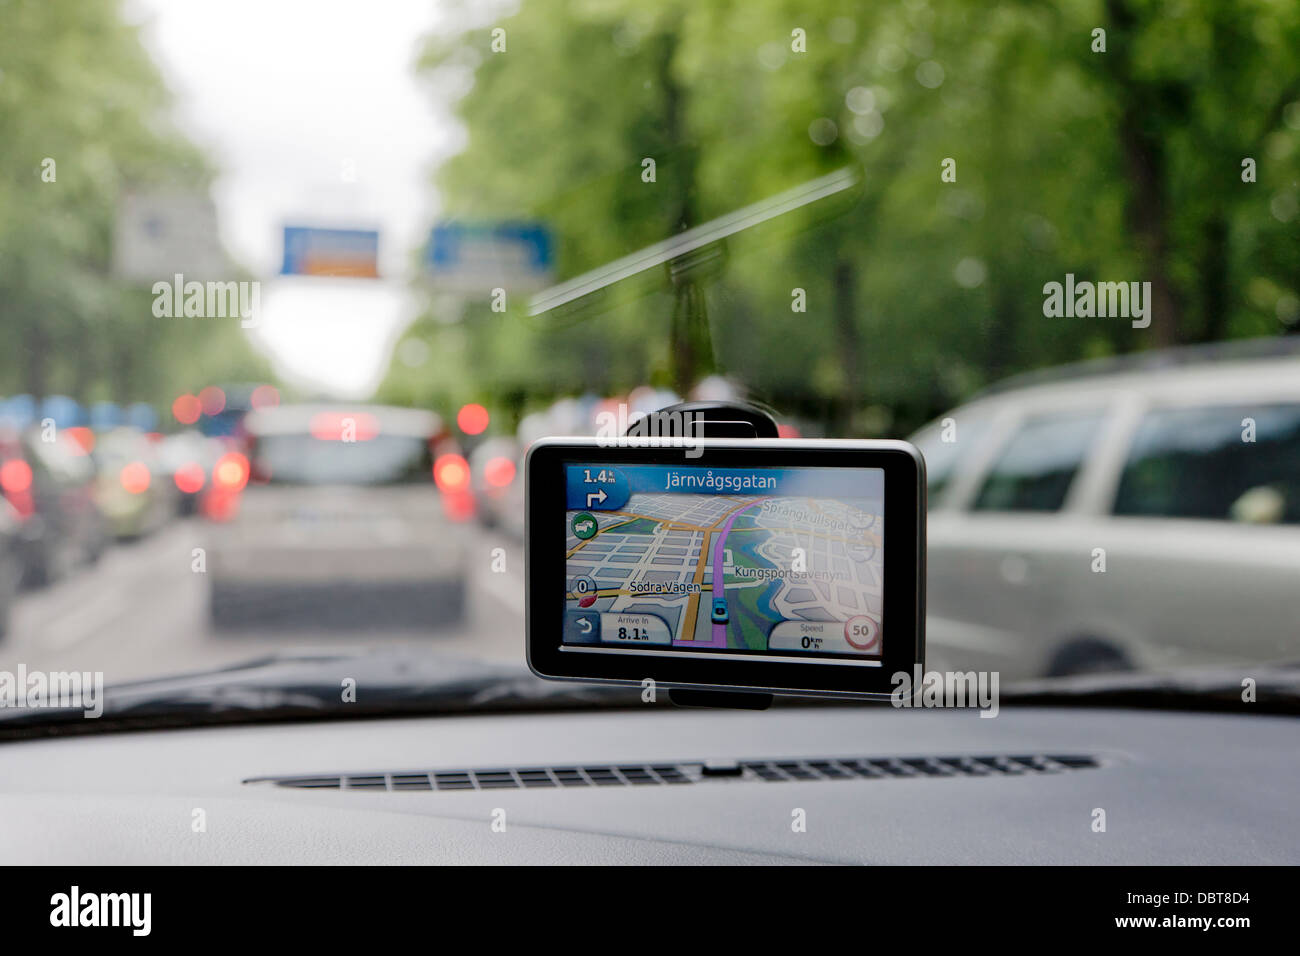 Global positioning system in car in traffic - Stock Image